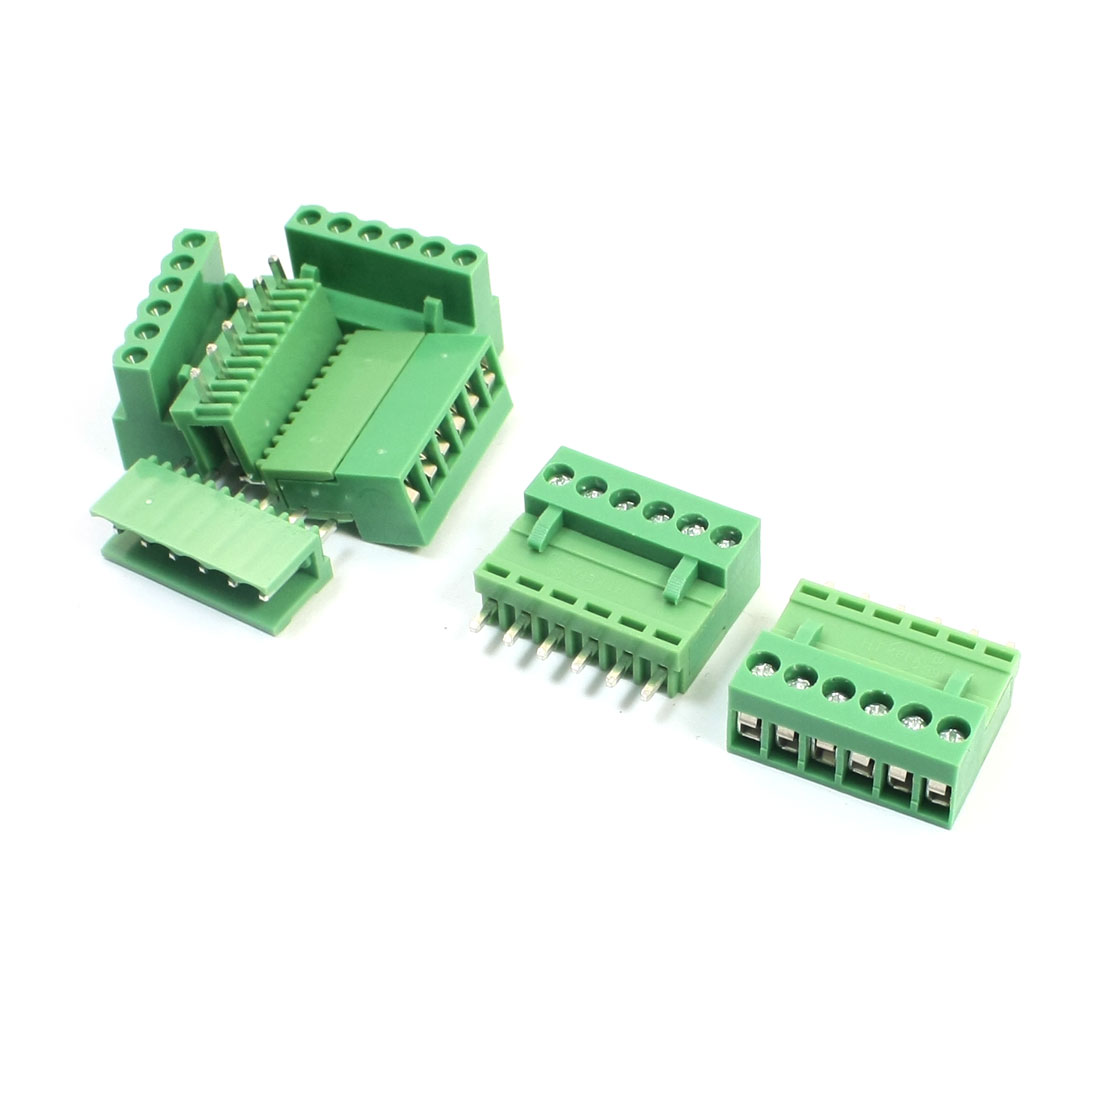 3.96mm Pitch Pluggable Type Through Hole Mounting PCB Screw Terminal Barrier Block Connector 14-26AWG 5Pcs